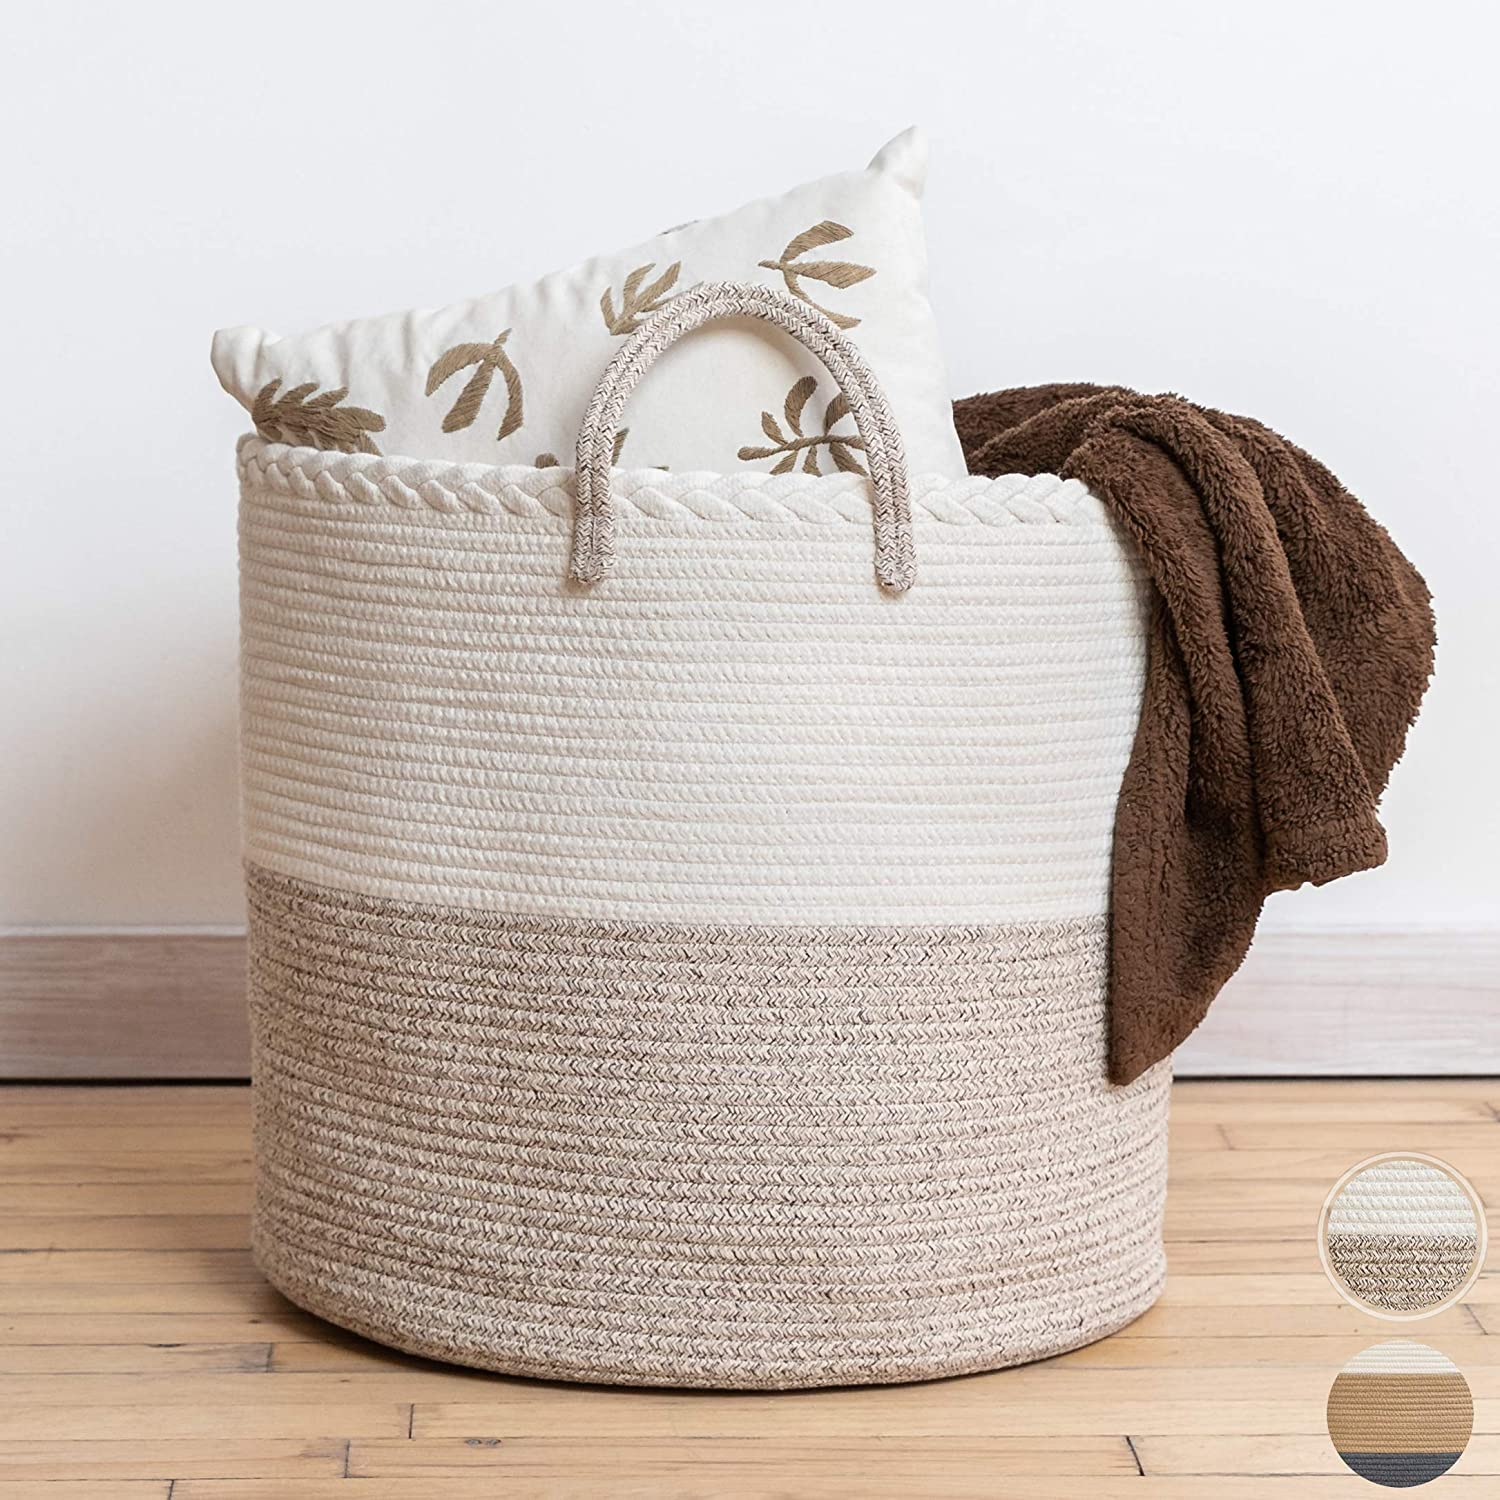 "XXL Premium Cotton Rope Basket 18""x16"" - Large Baskets for Storage – Woven Laundry Basket- Brown Farmhouse Basket -Rope Storage Baskets - Cotton Basket for Living Room Storage - Wicker Basket"